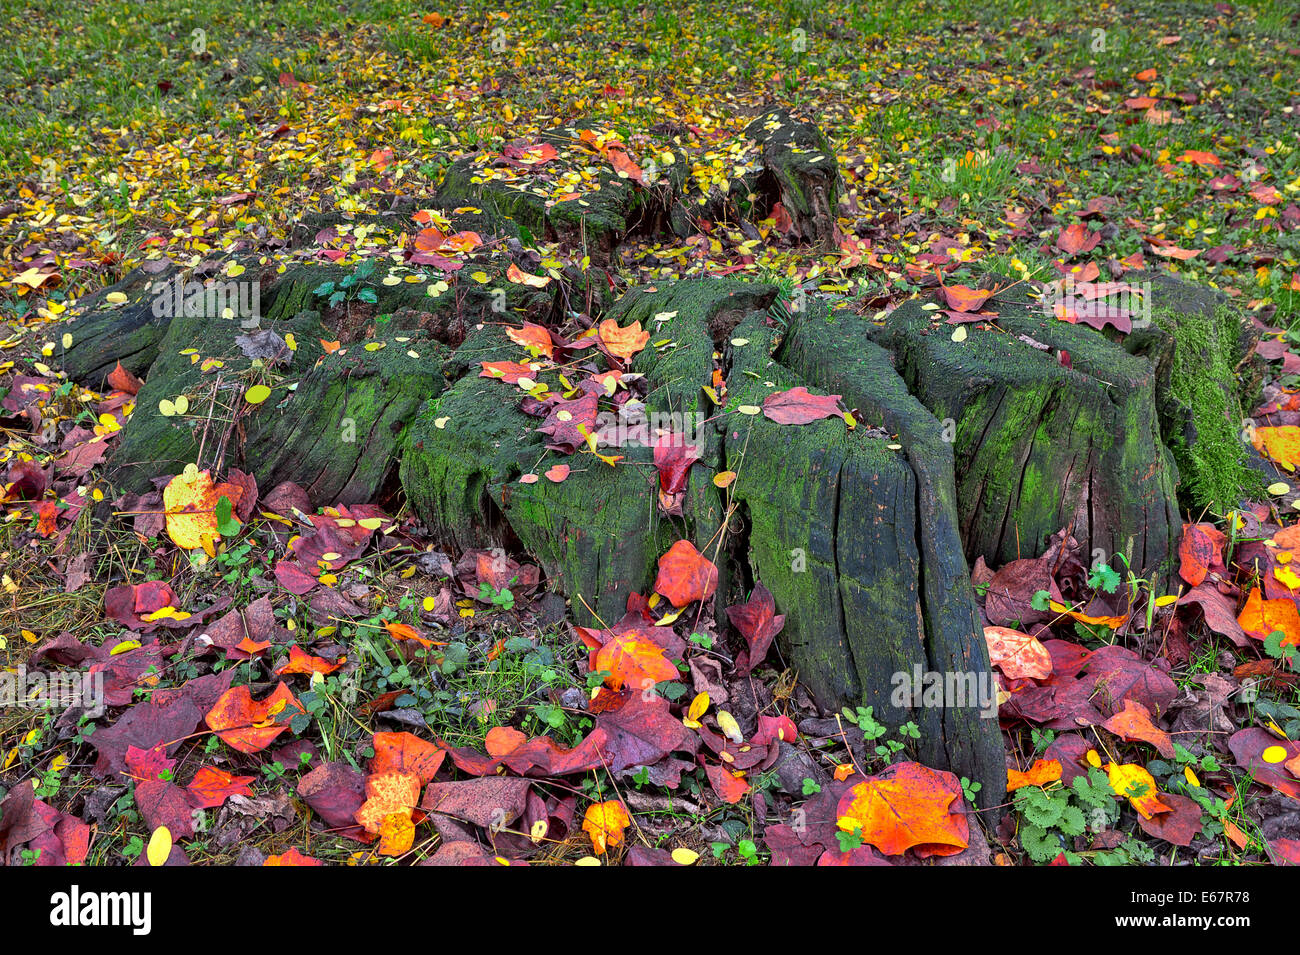 Old tree stump covered with green moss and surrounded by fallen red, yellow and orange leaves in autumn. - Stock Image